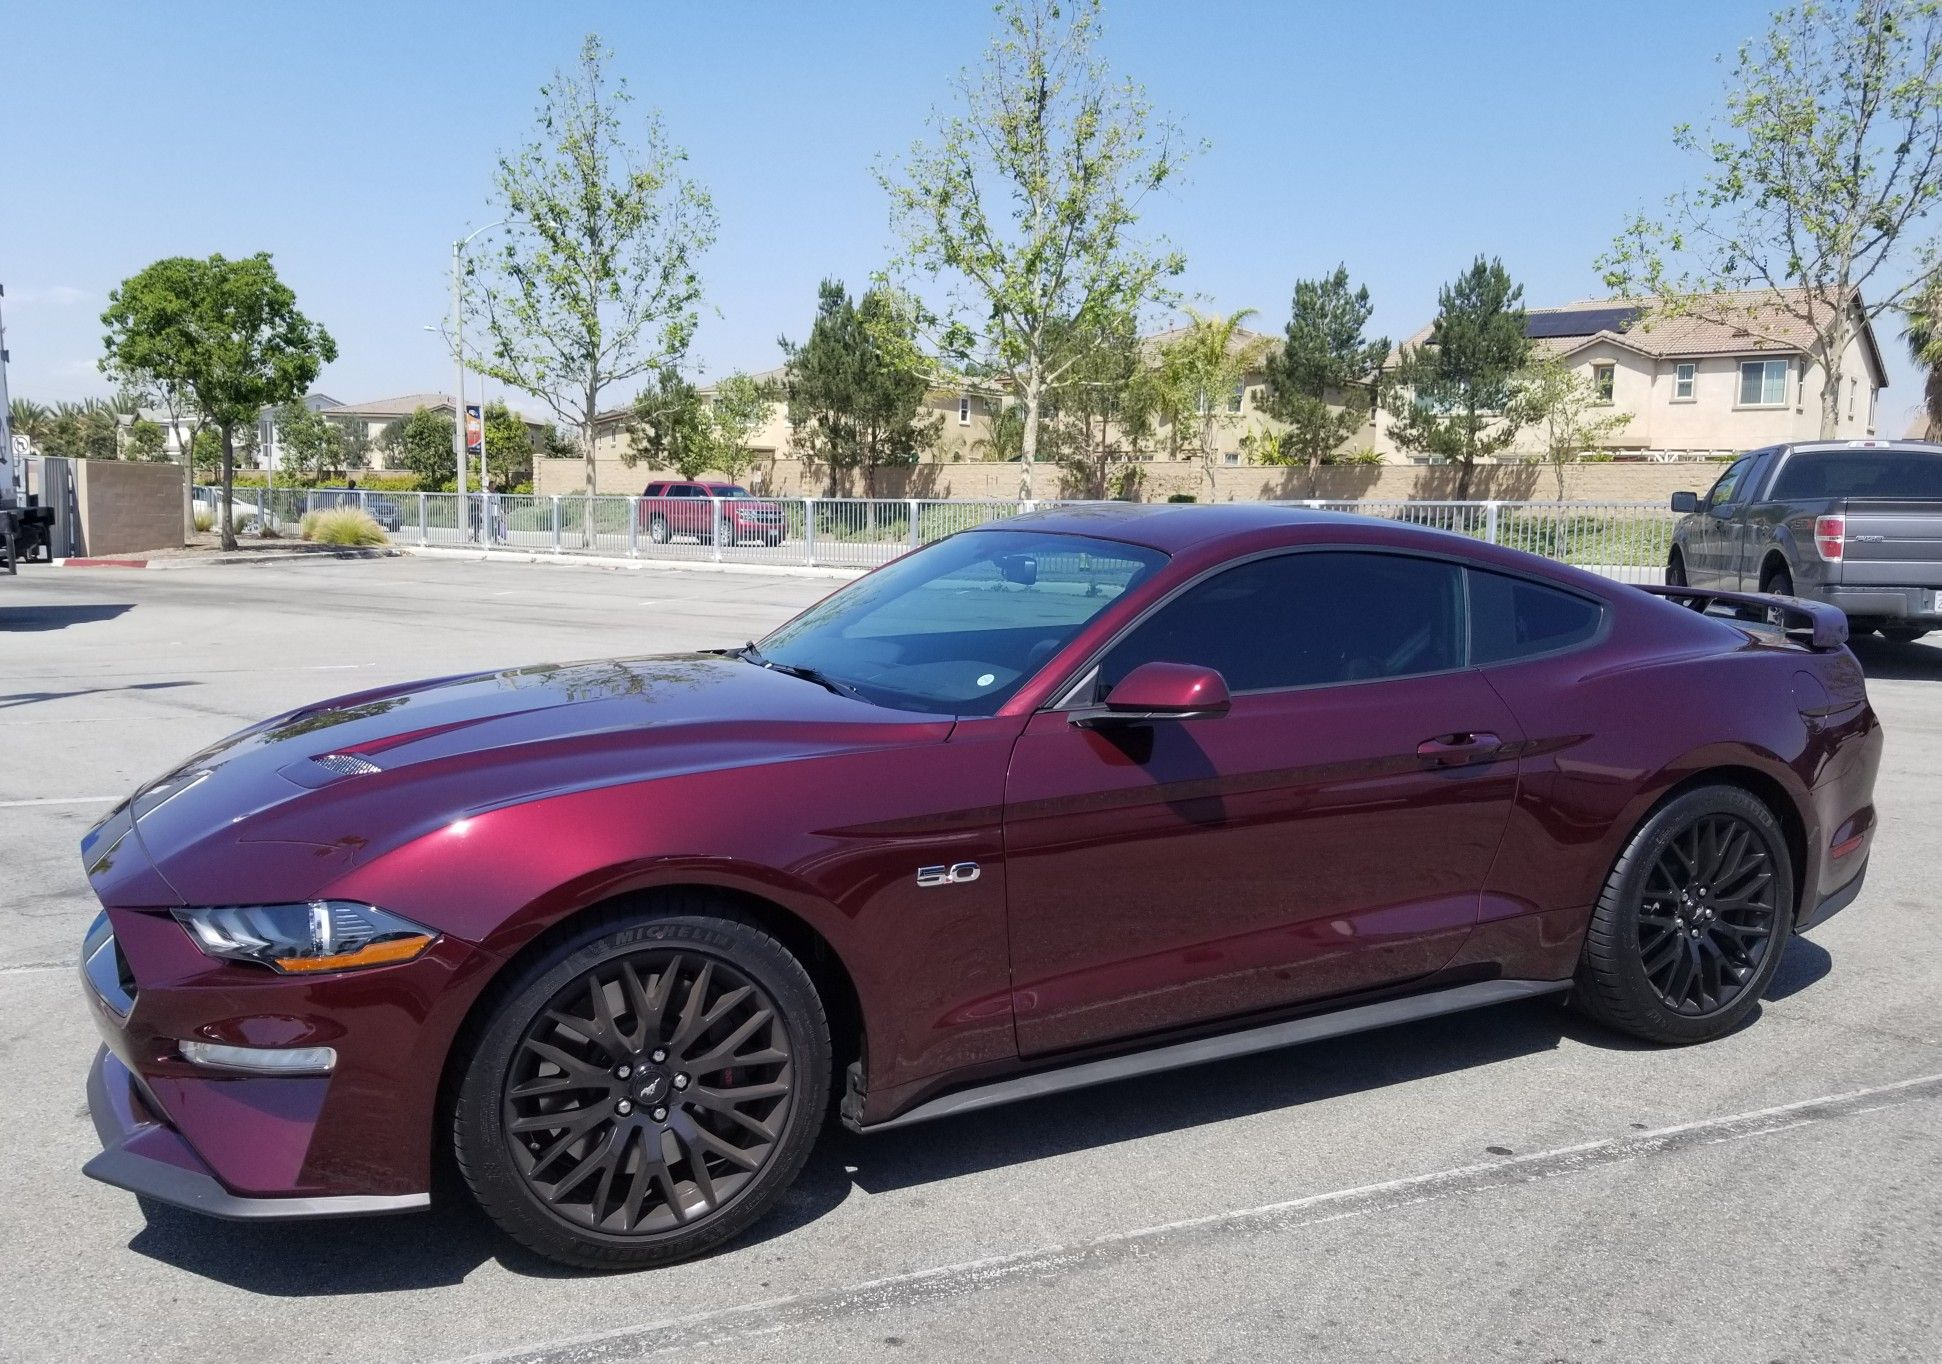 My New 2018 Ford Mustang Gt 5 0 Royal Crimson Red 6 Speed Manual And 465 Horsepower Go Mymustang Red Mustang S550 Mustang Mustang 2018